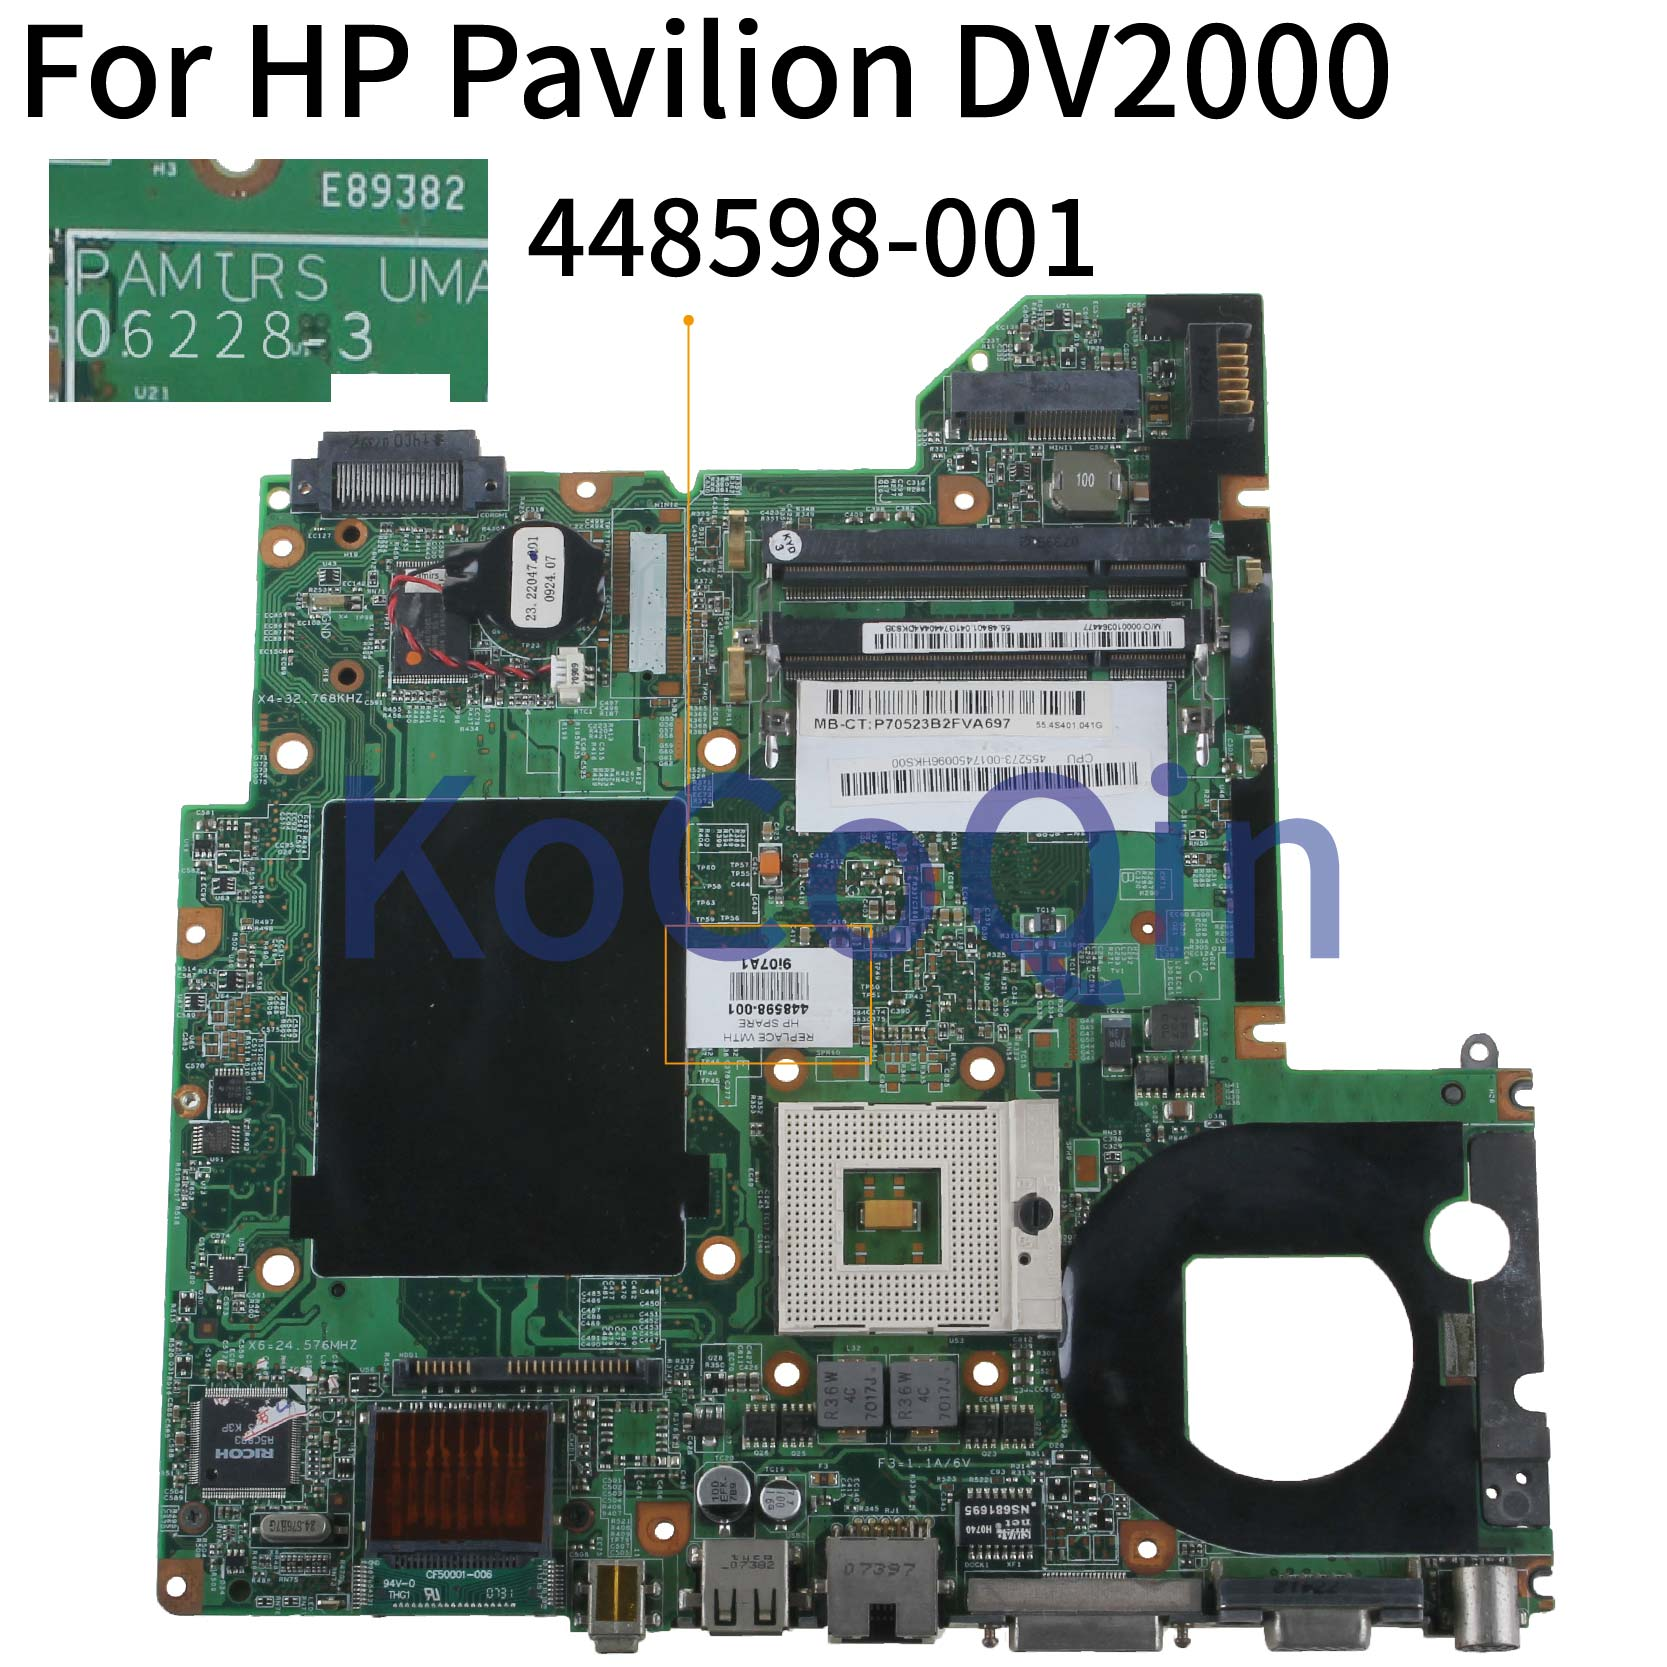 KoCoQin Laptop Motherboard For HP Compaq V3000 DV2000 Mainboard 448598-001 06228-3 965 DDR2